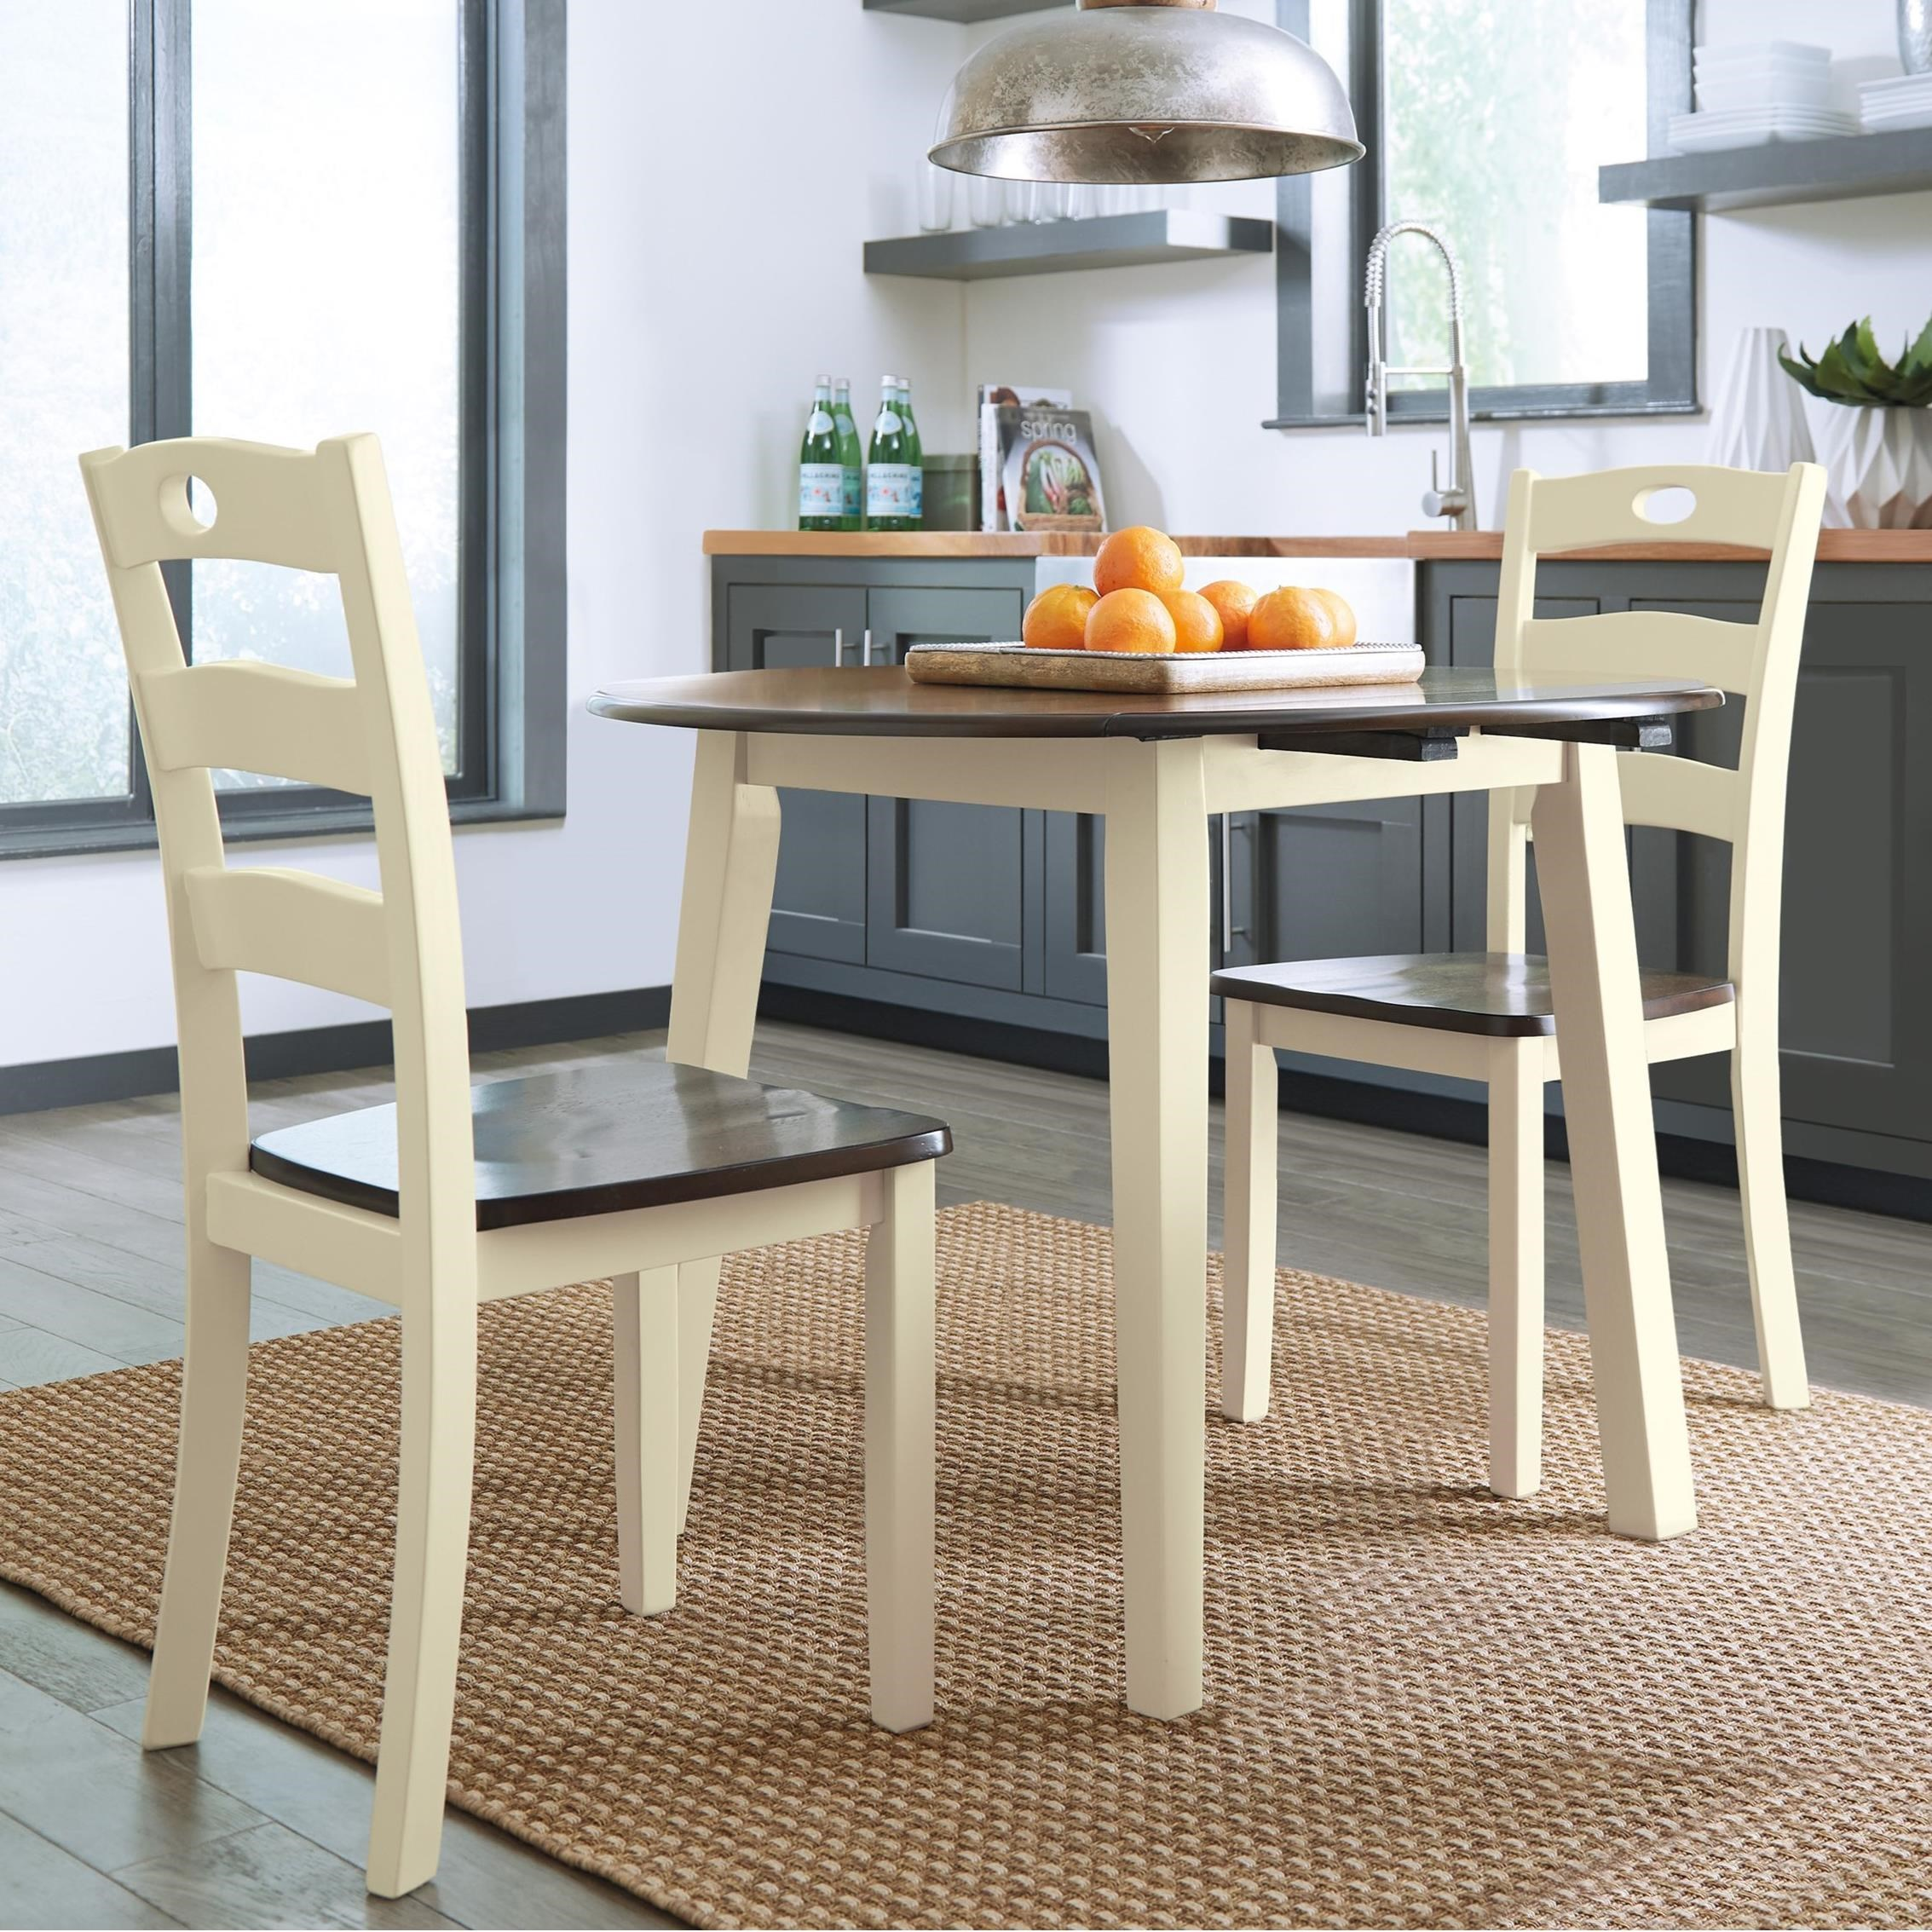 Woodanville 3-Piece Round Drop Leaf Table Set by Signature Design by Ashley at Suburban Furniture